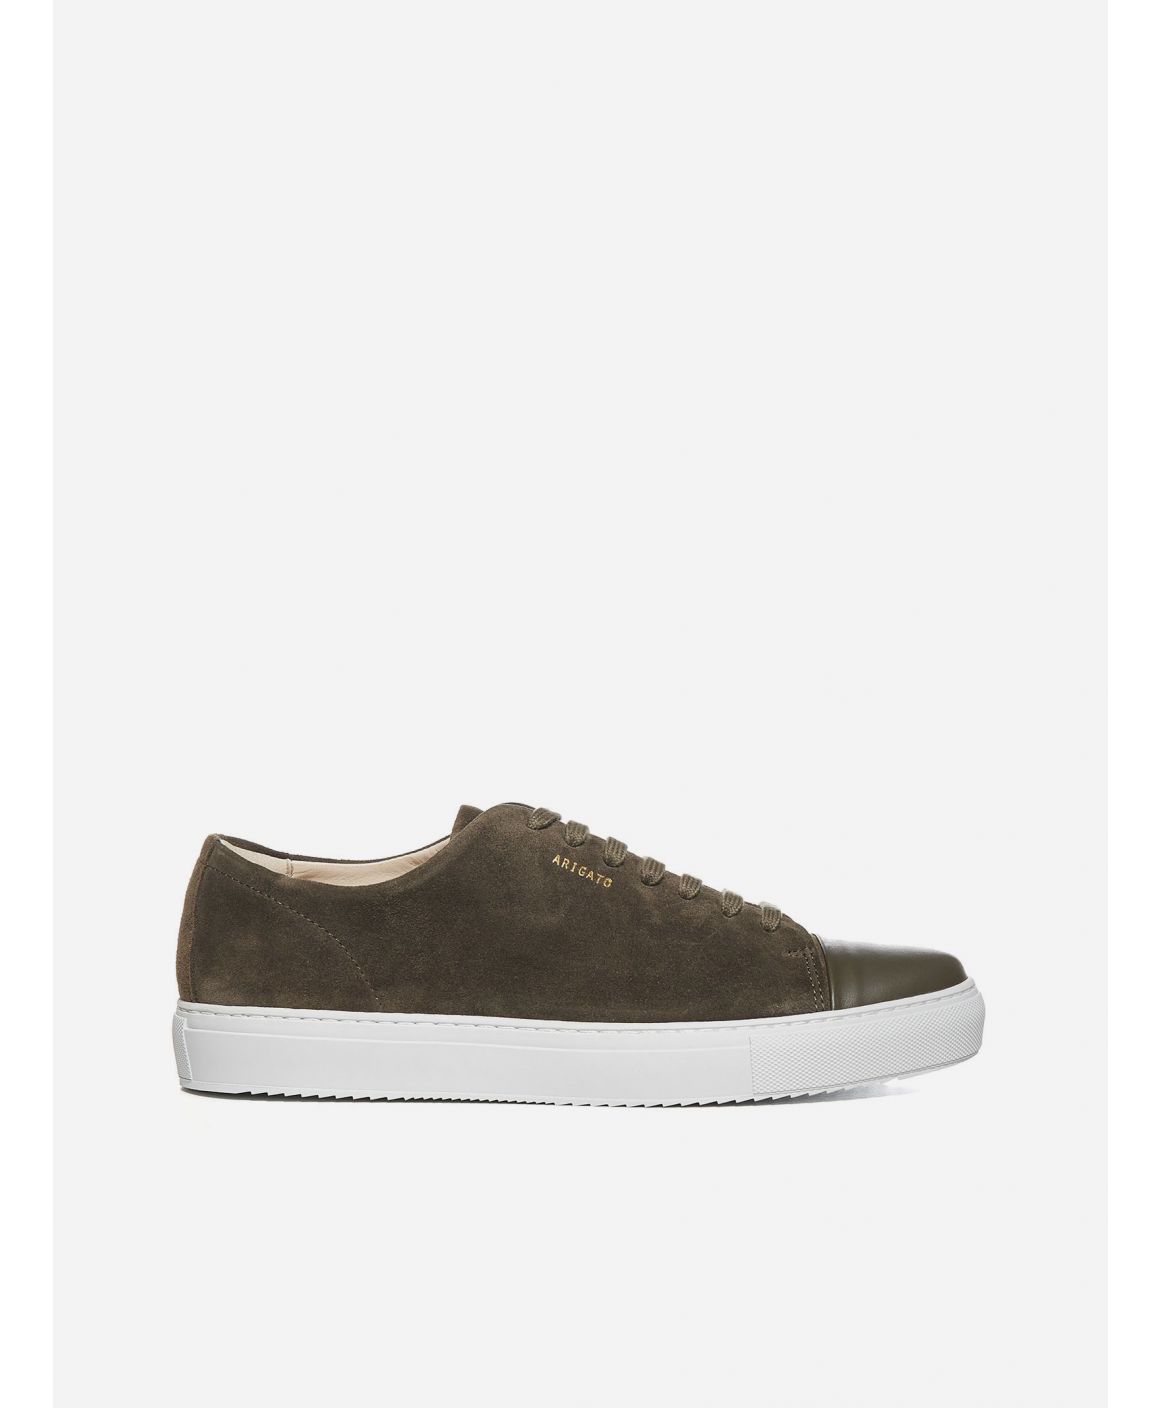 Cap toe suede leather sneakers